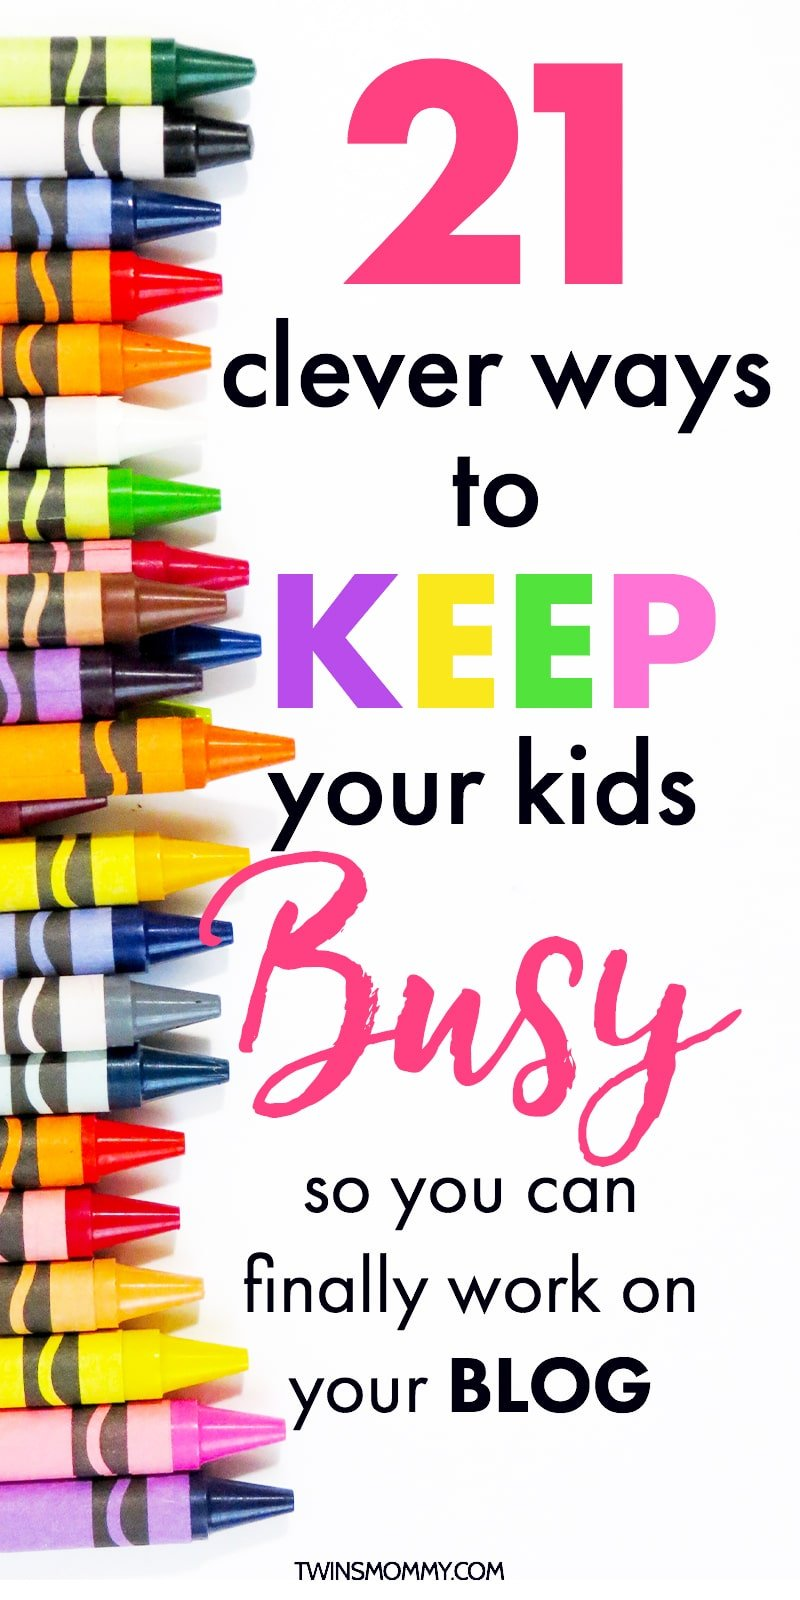 58d8f987d4f8 21 Clever Ways to Keep Kids Busy (So Mom Can Blog!) - Twins Mommy